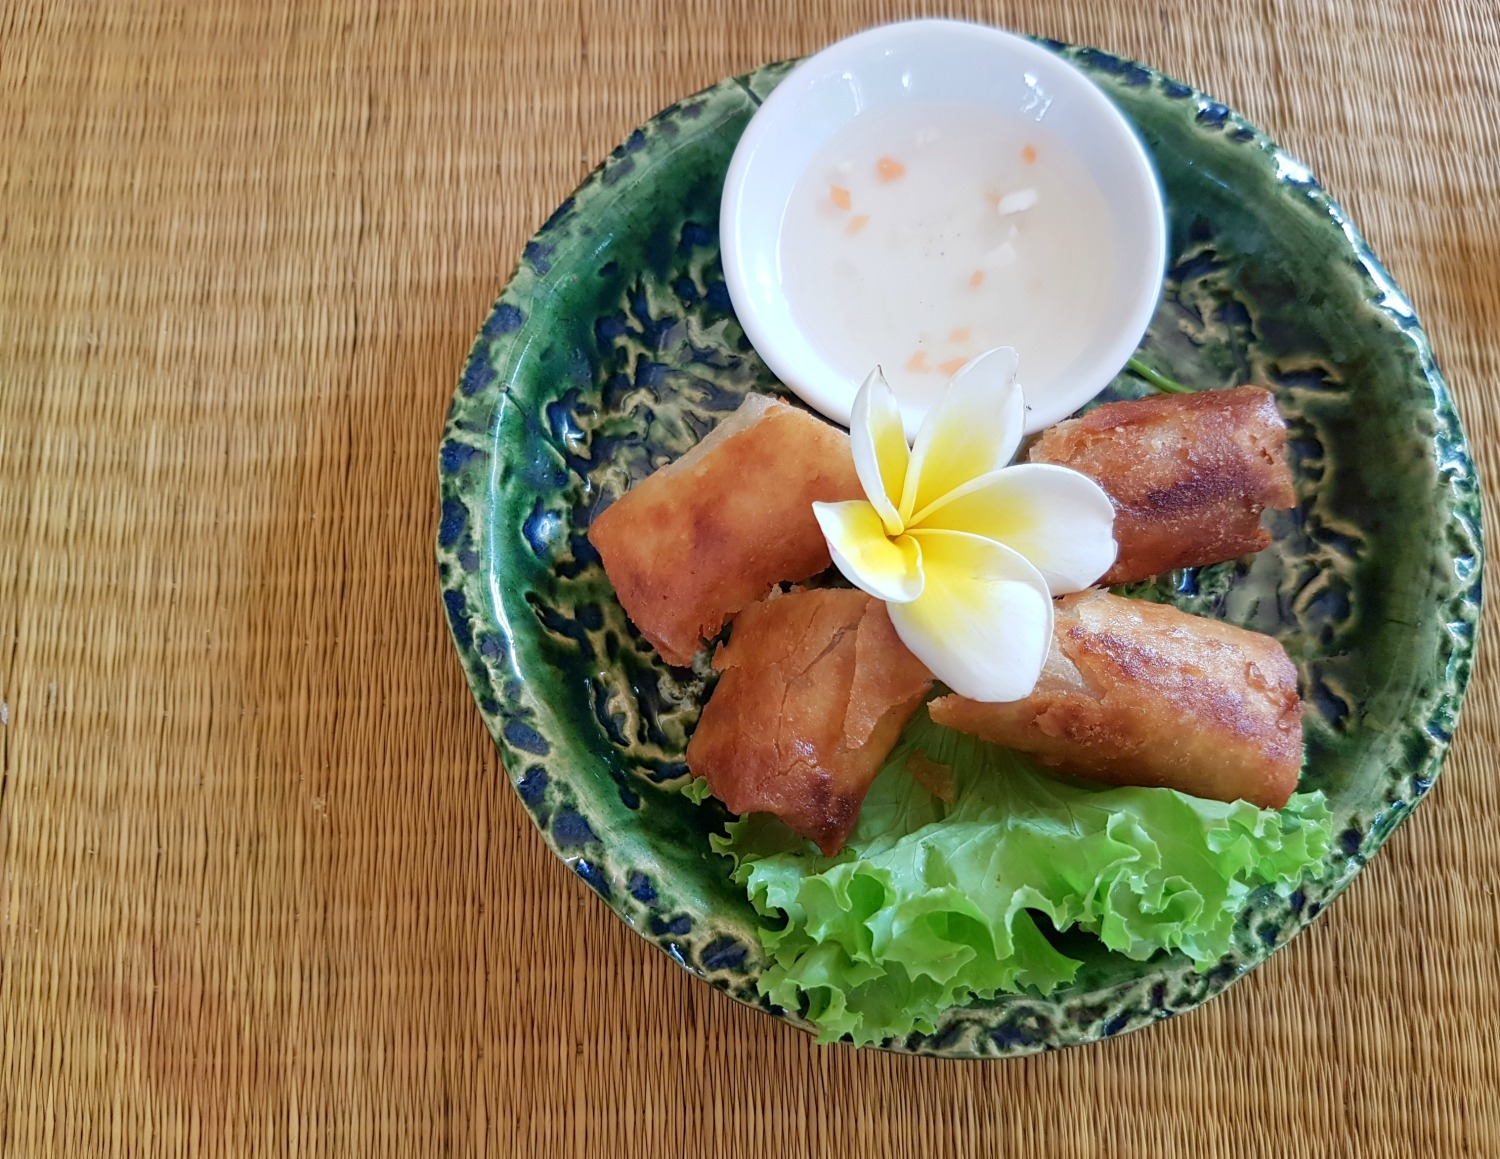 Spring rolls with a frangipani flower - my top 13 tips for Cambodia with kids, the lessons learned from our family travel in the country